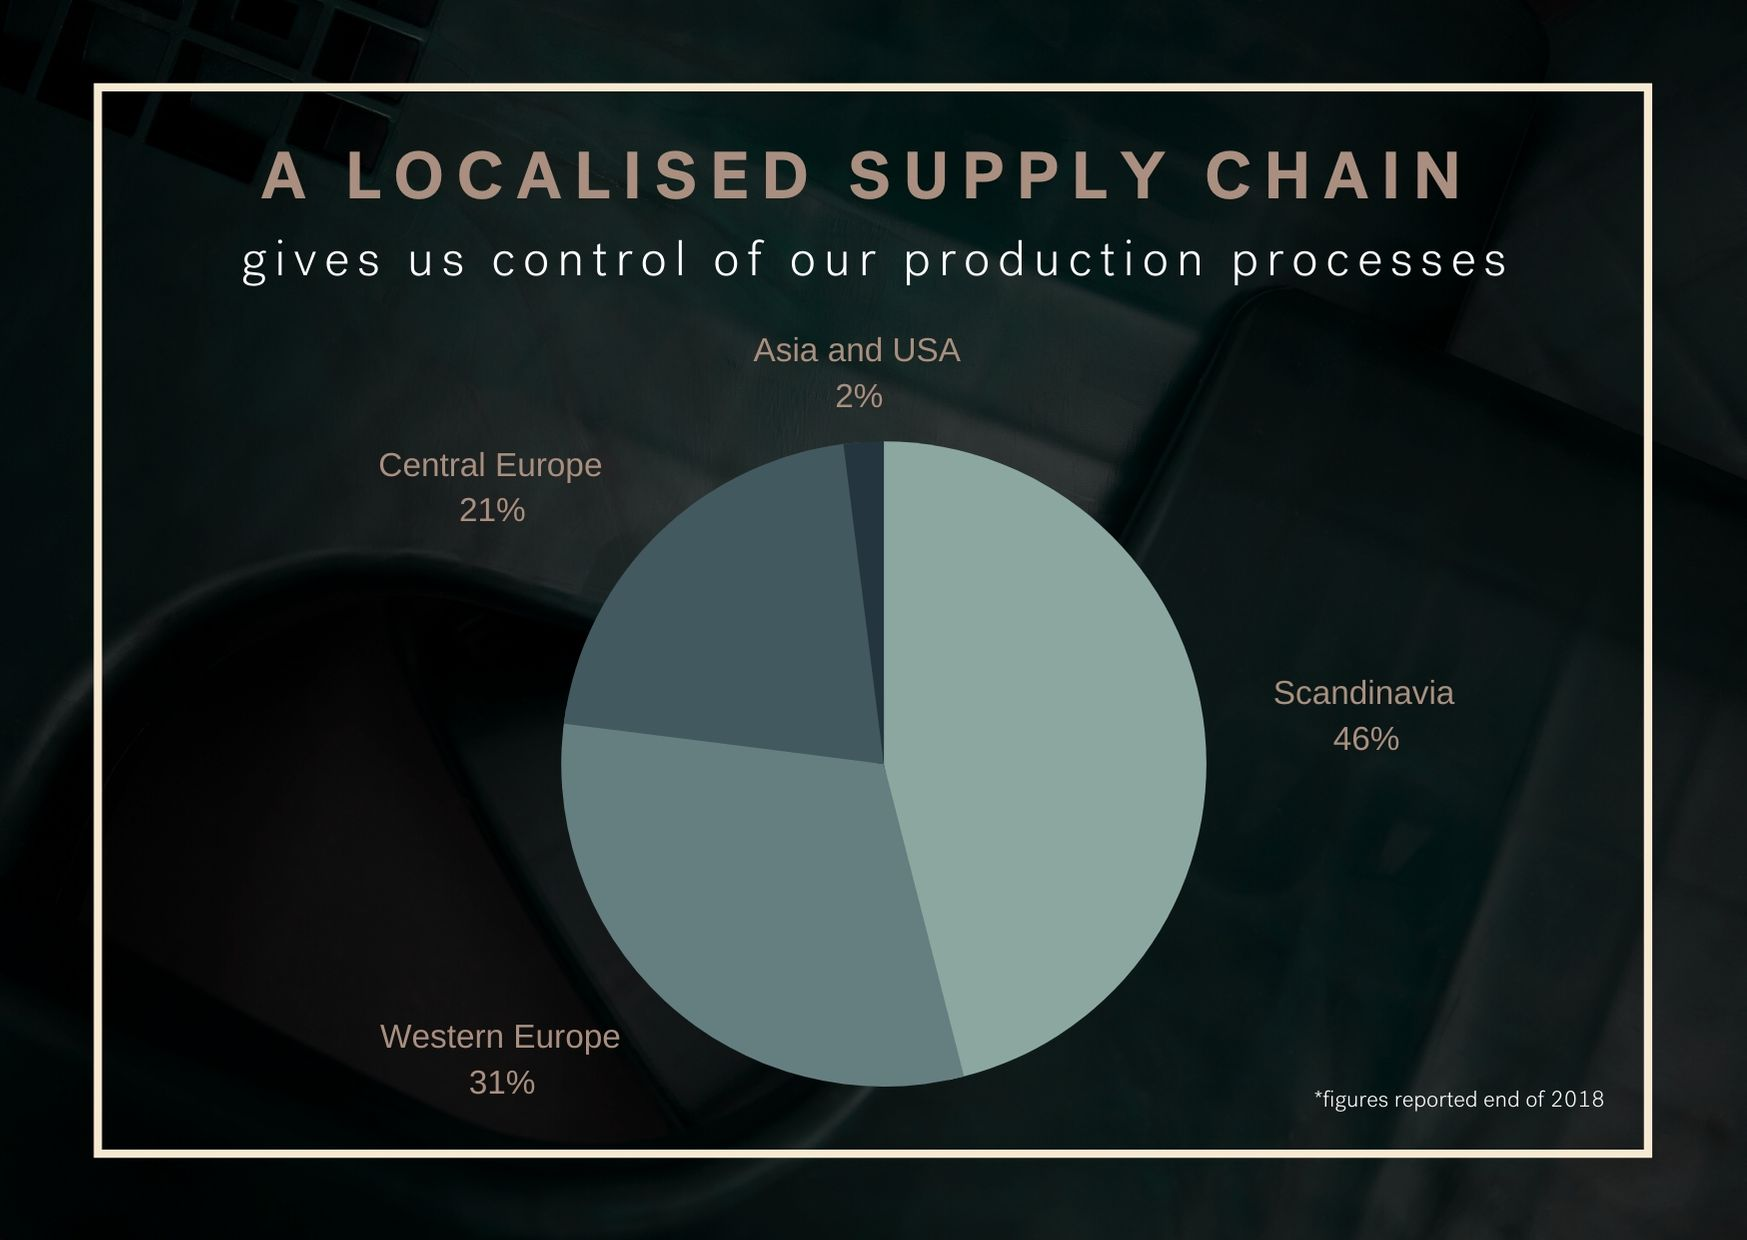 visualisation of Flokk supply chain by country focusing on locally produced materials and components infographic